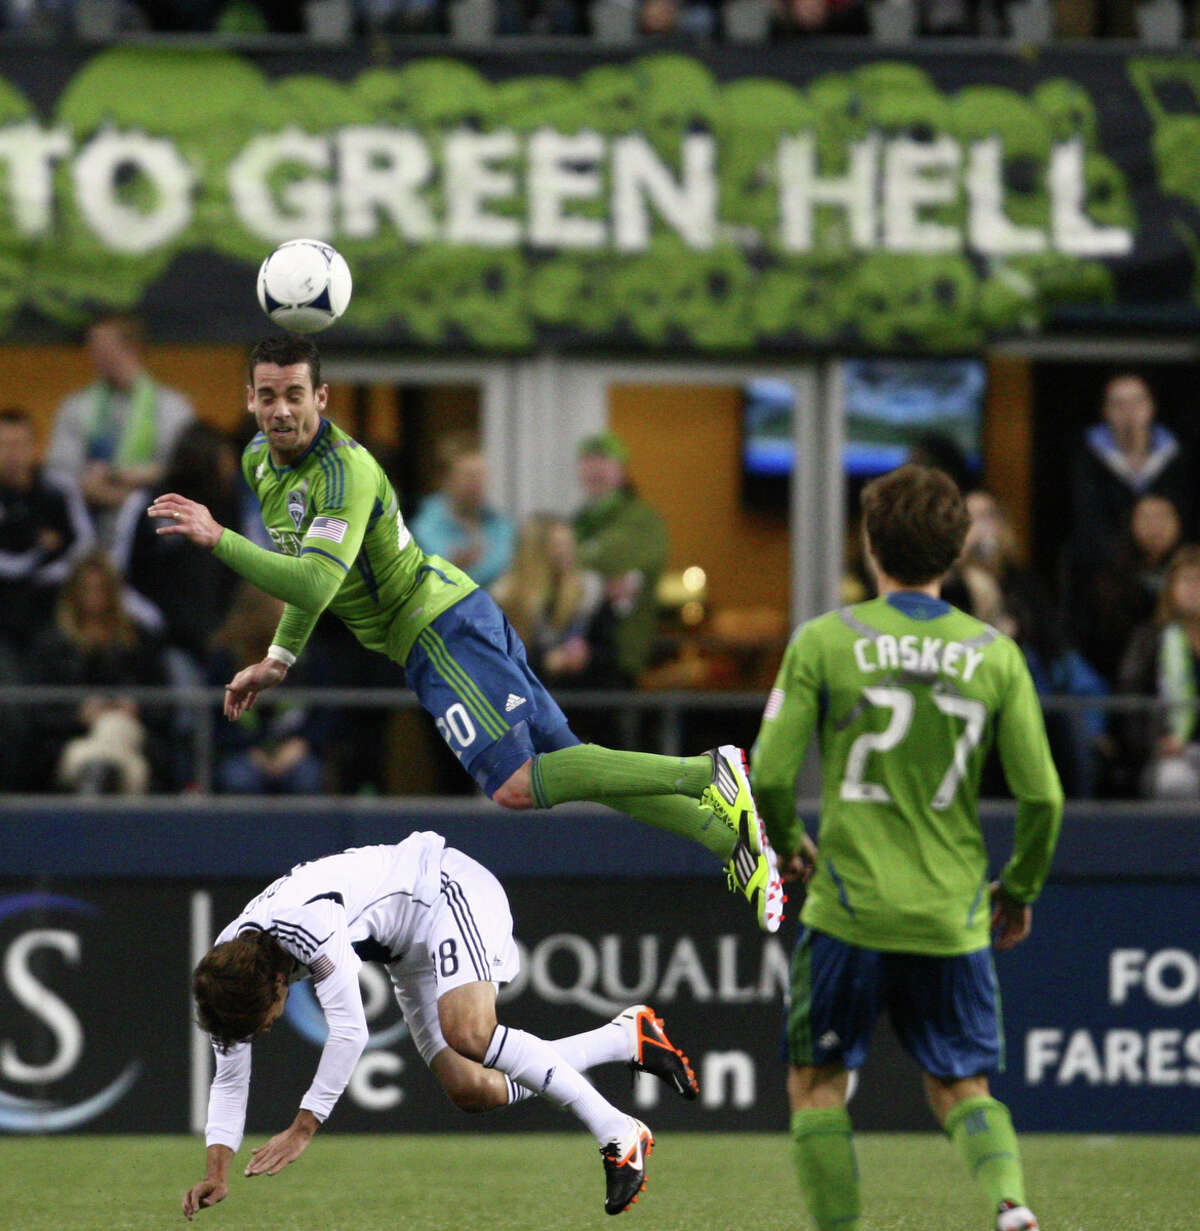 Sounder's defender Zach Scott heads the ball above Galaxy player Mike Magee during the Galaxy vs. Sounders game at CenturyLink Field in Seattle.